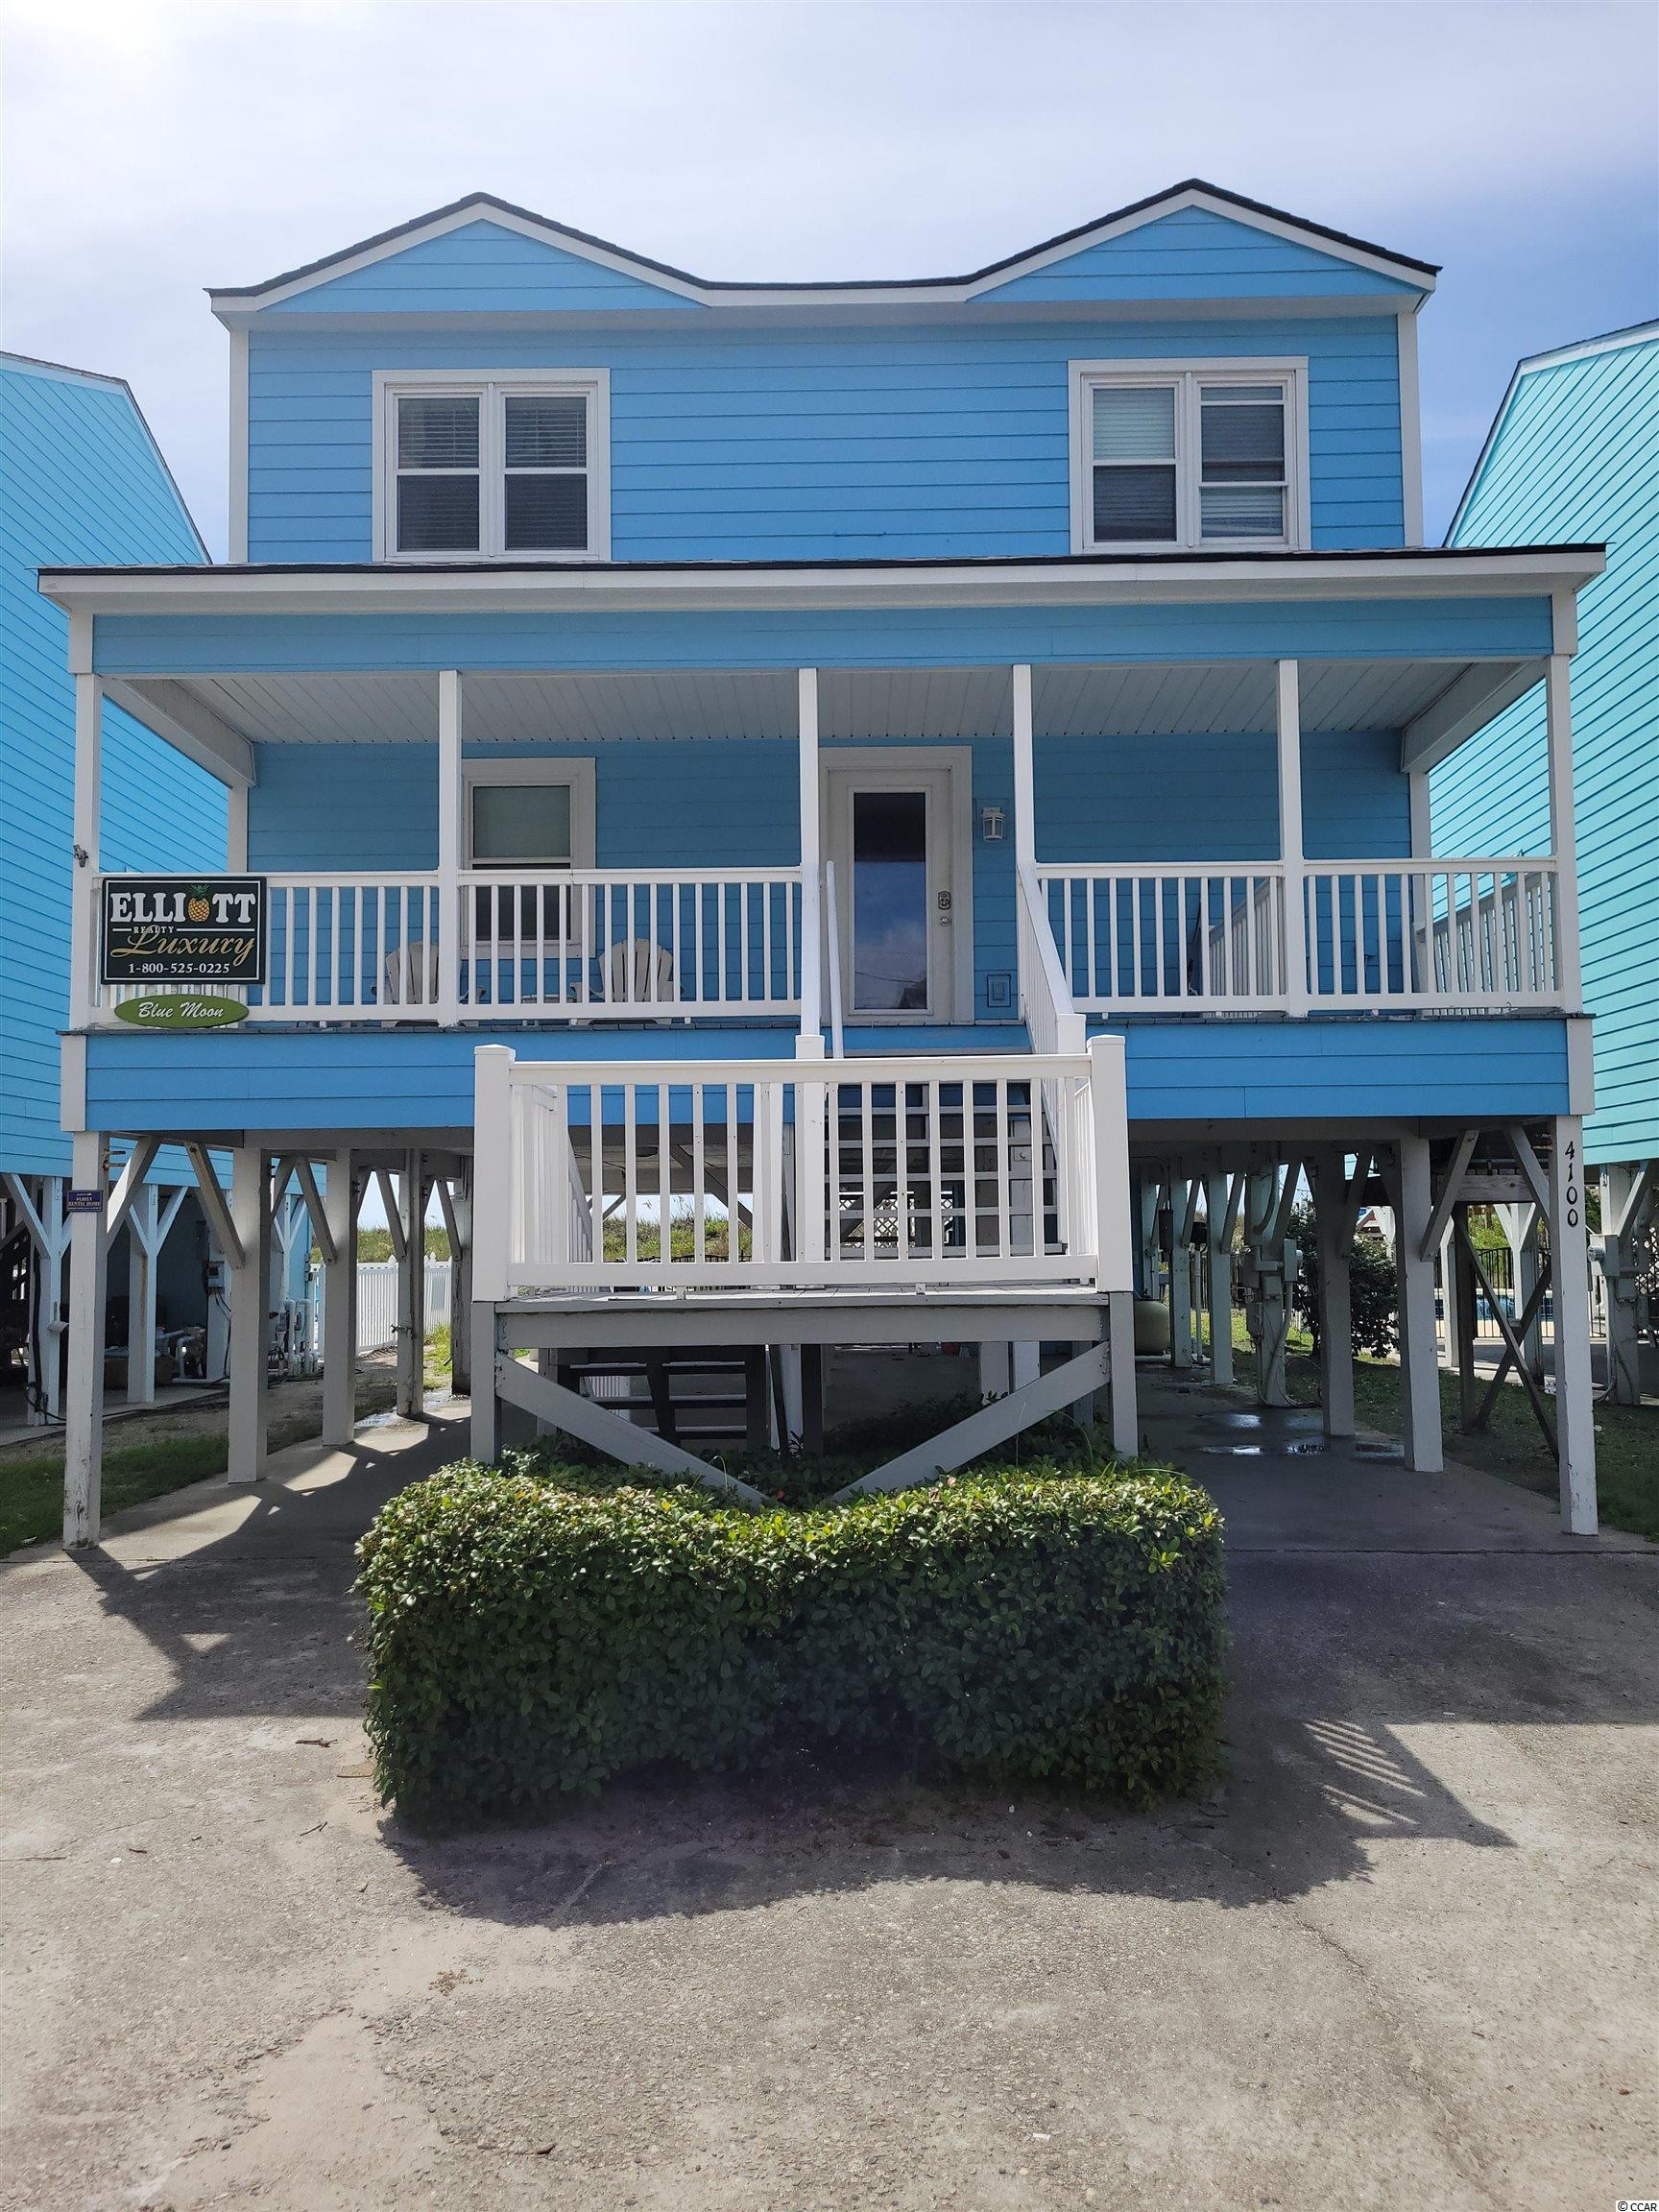 6BR / 3.5 BA oceanfront home with pool and spa. Set up as vacation rental with strong rentals 2021 and already filling up for 2022.